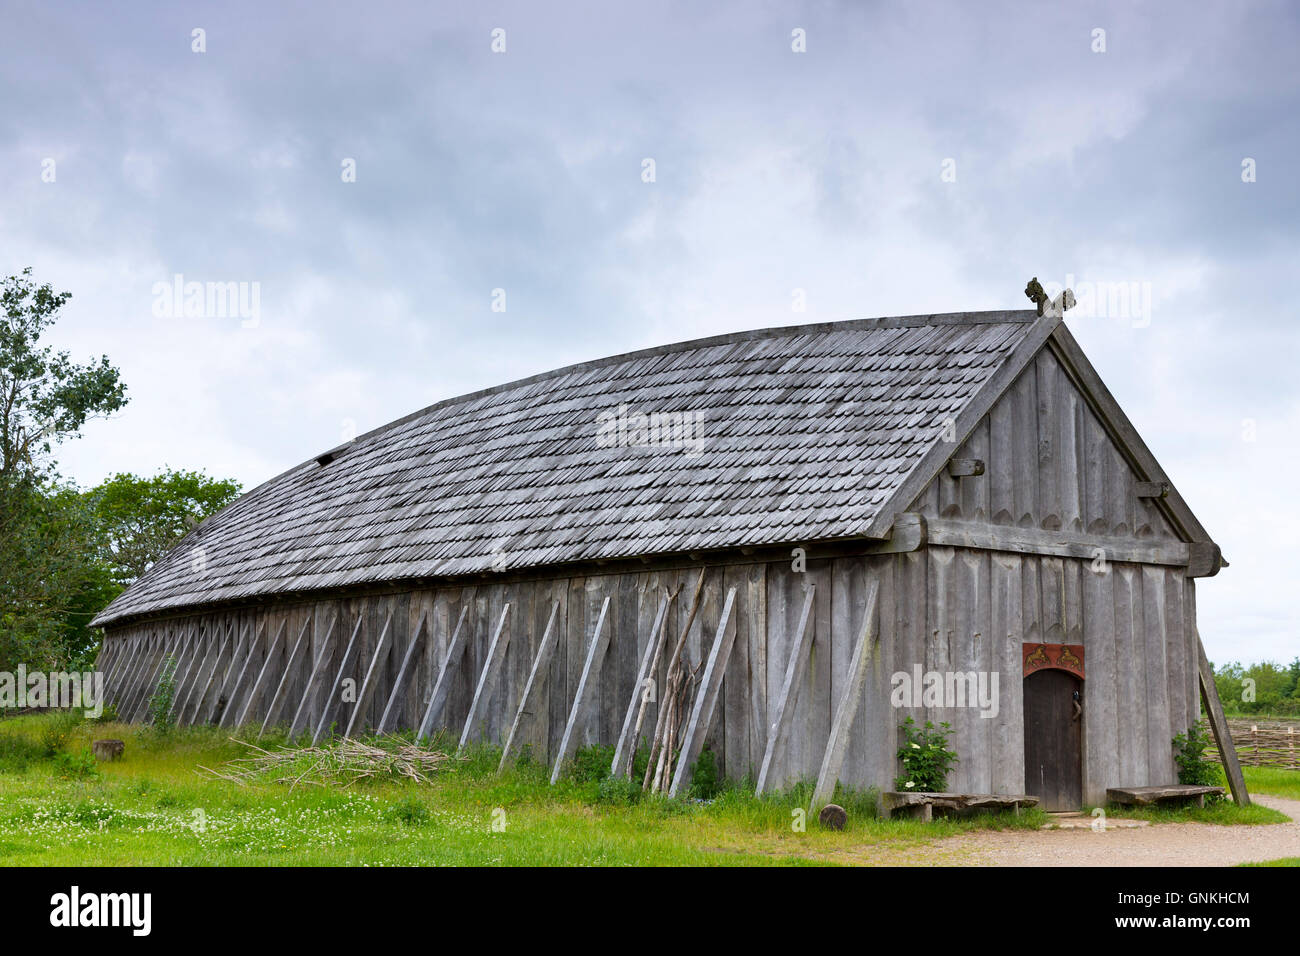 Historic Viking Longhouse Reconstruction With Oak Shingles